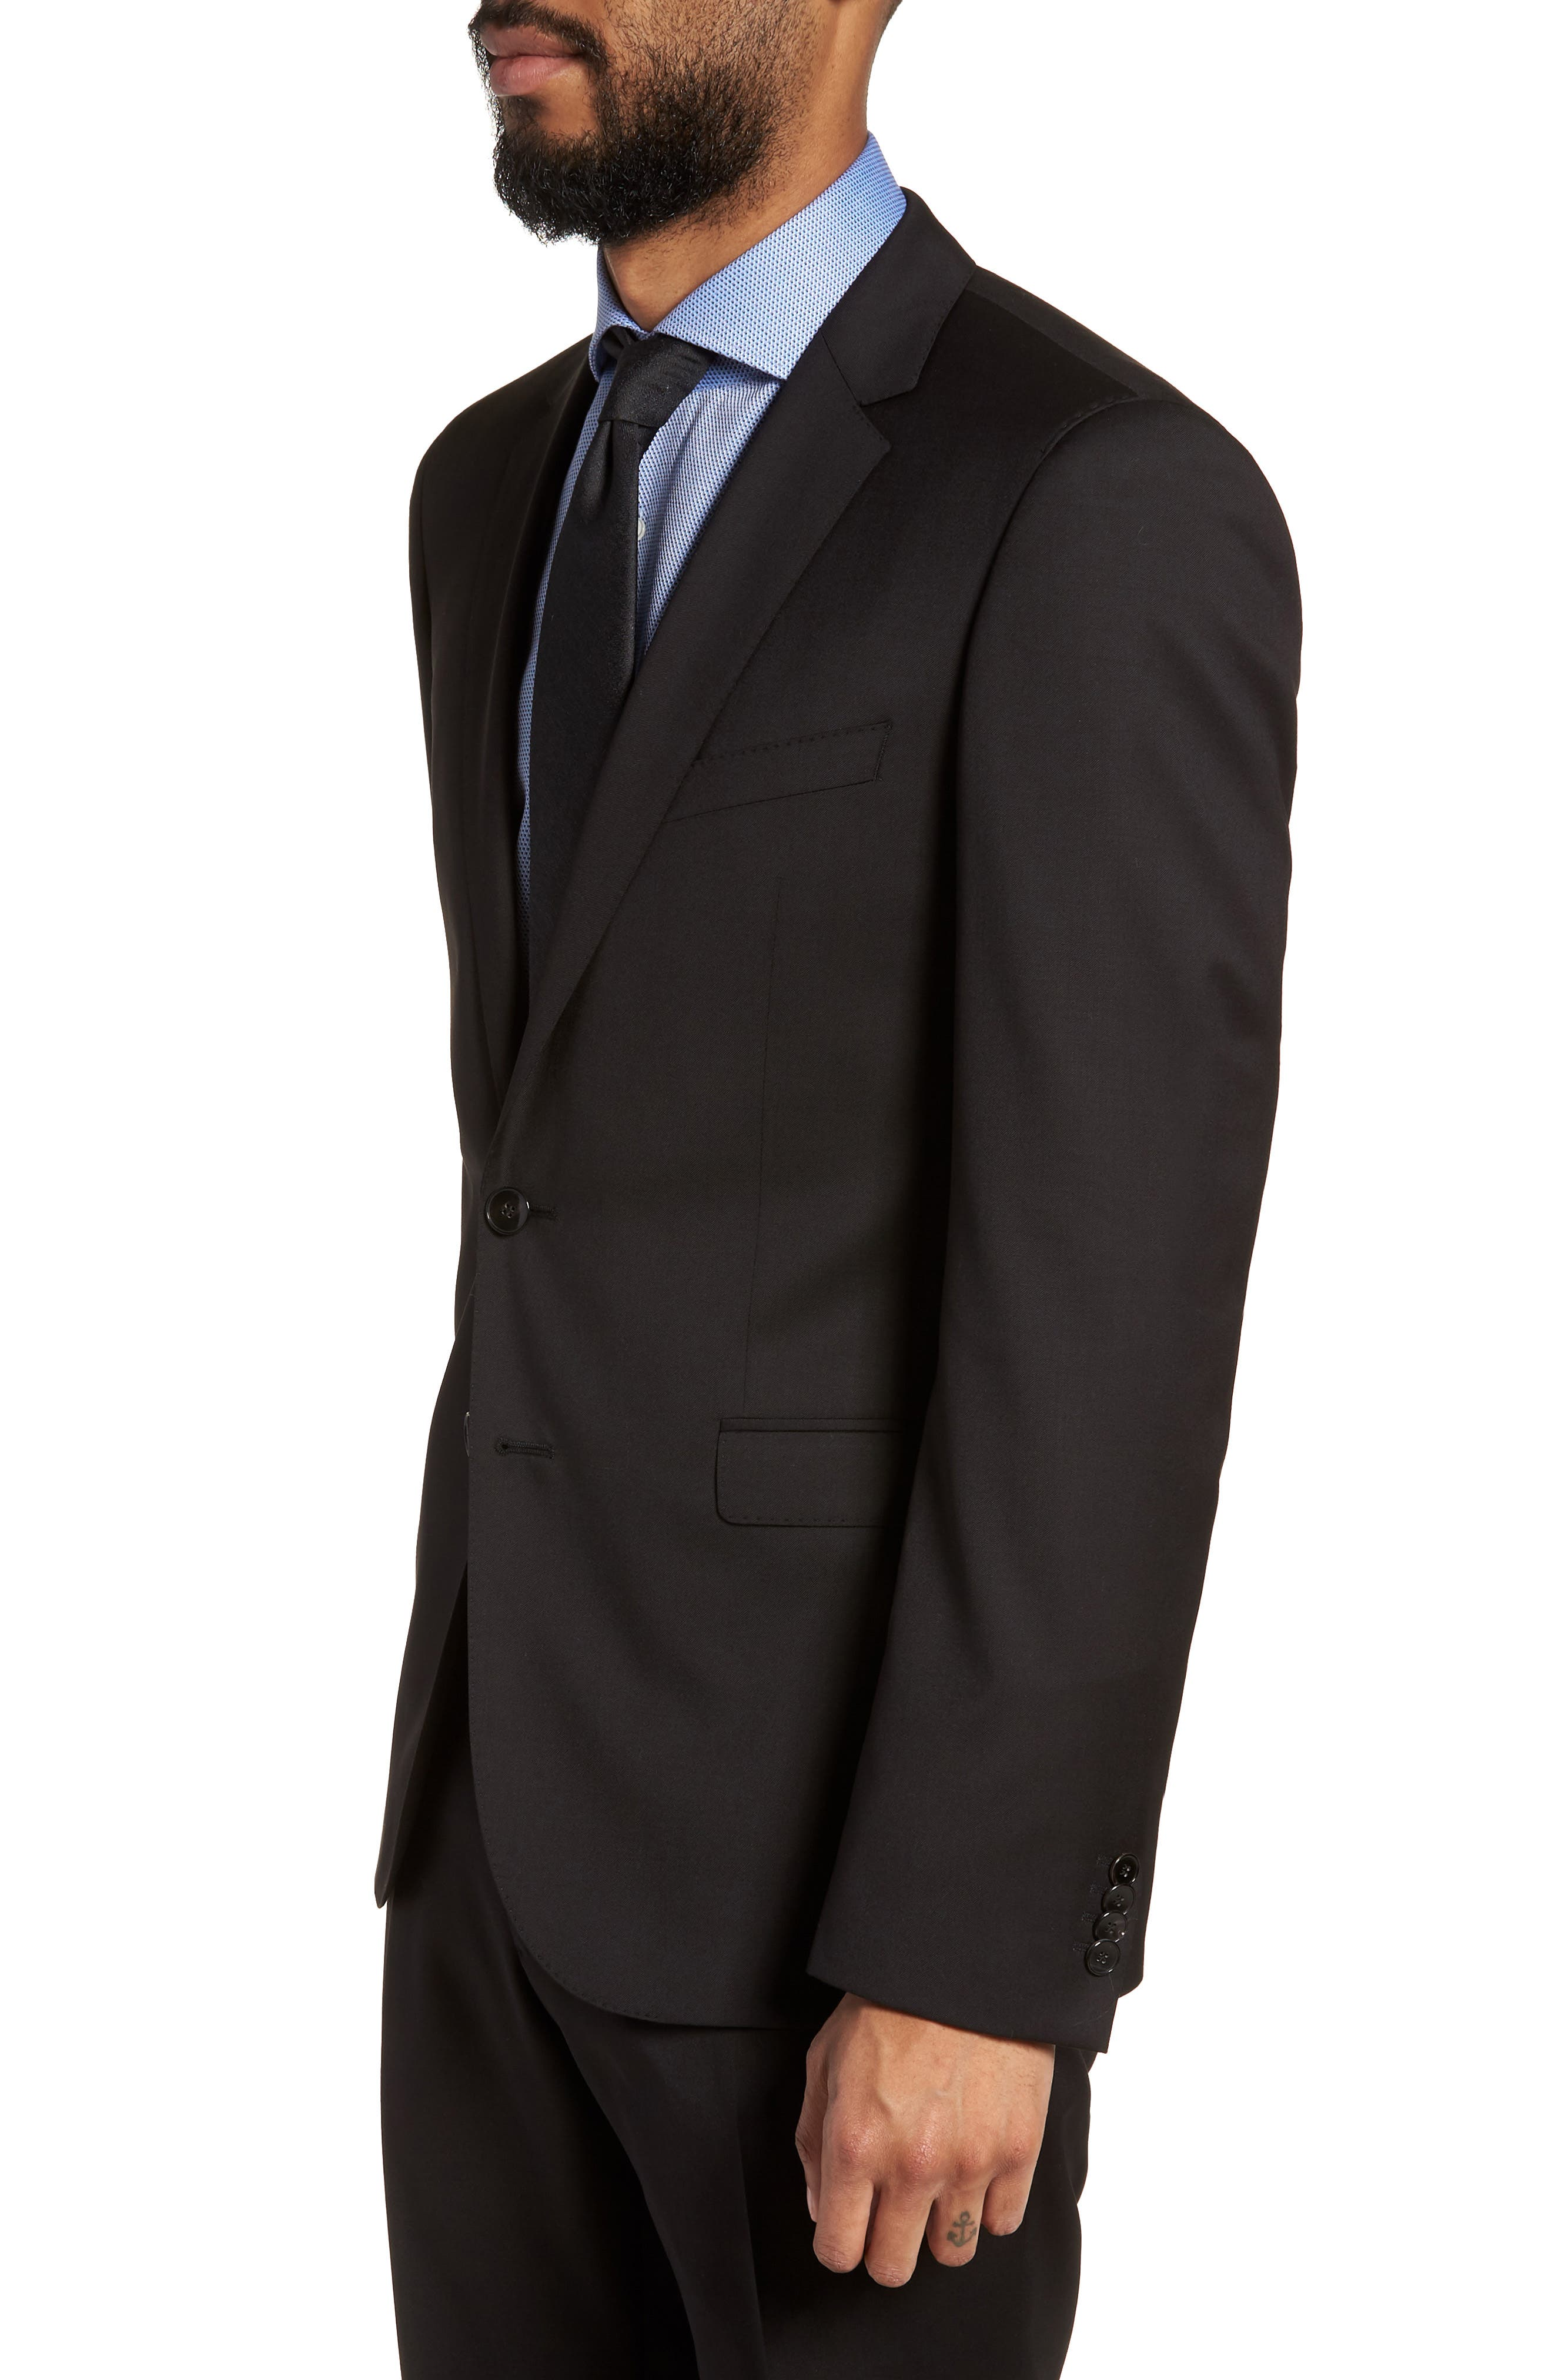 Ryan CYL Extra Trim Fit Solid Wool Blazer,                             Alternate thumbnail 3, color,                             BLACK